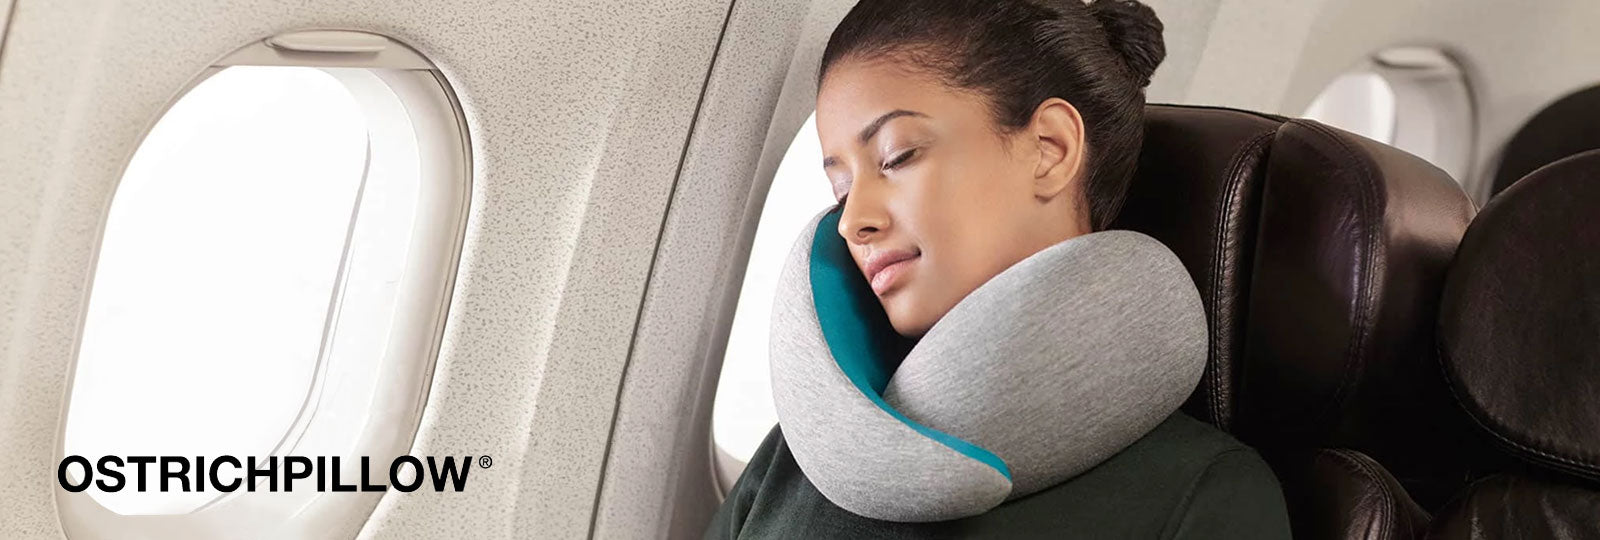 Ostrichpillow now available at Sportique